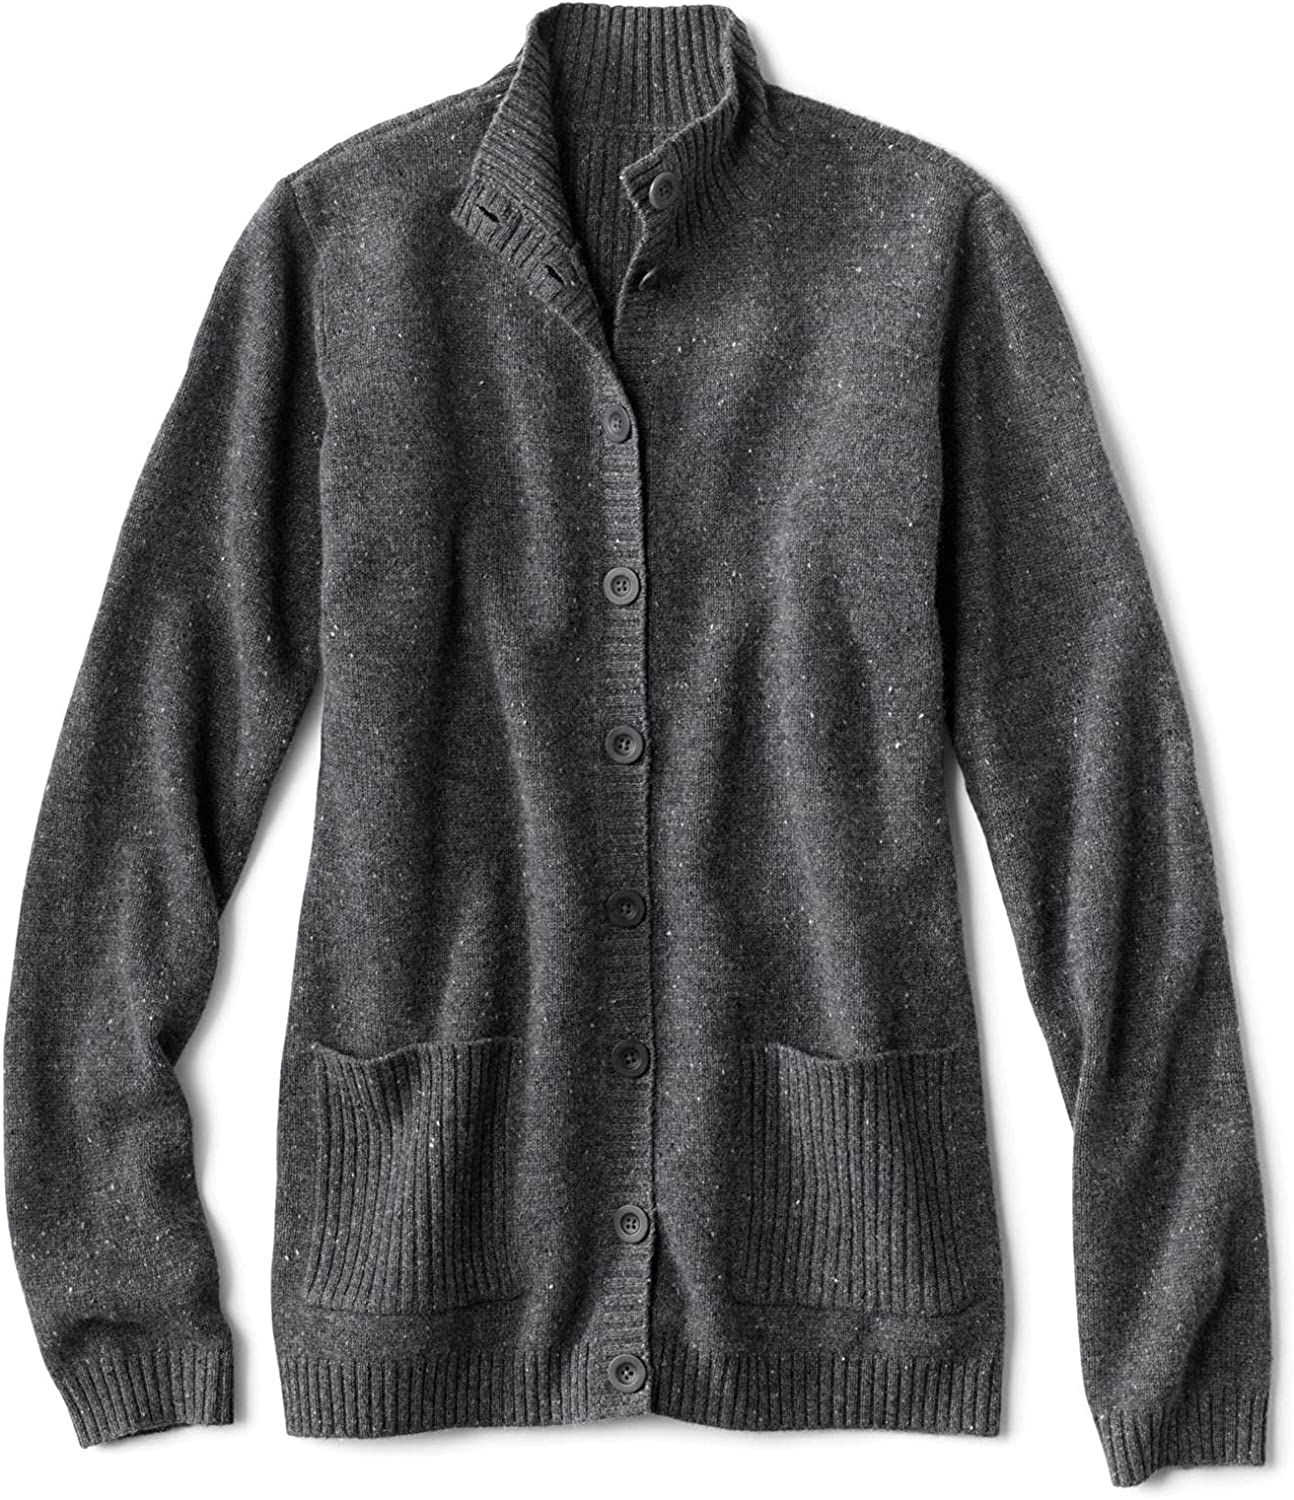 Orvis Women's Countryside Cashmere Cardigan Sweater